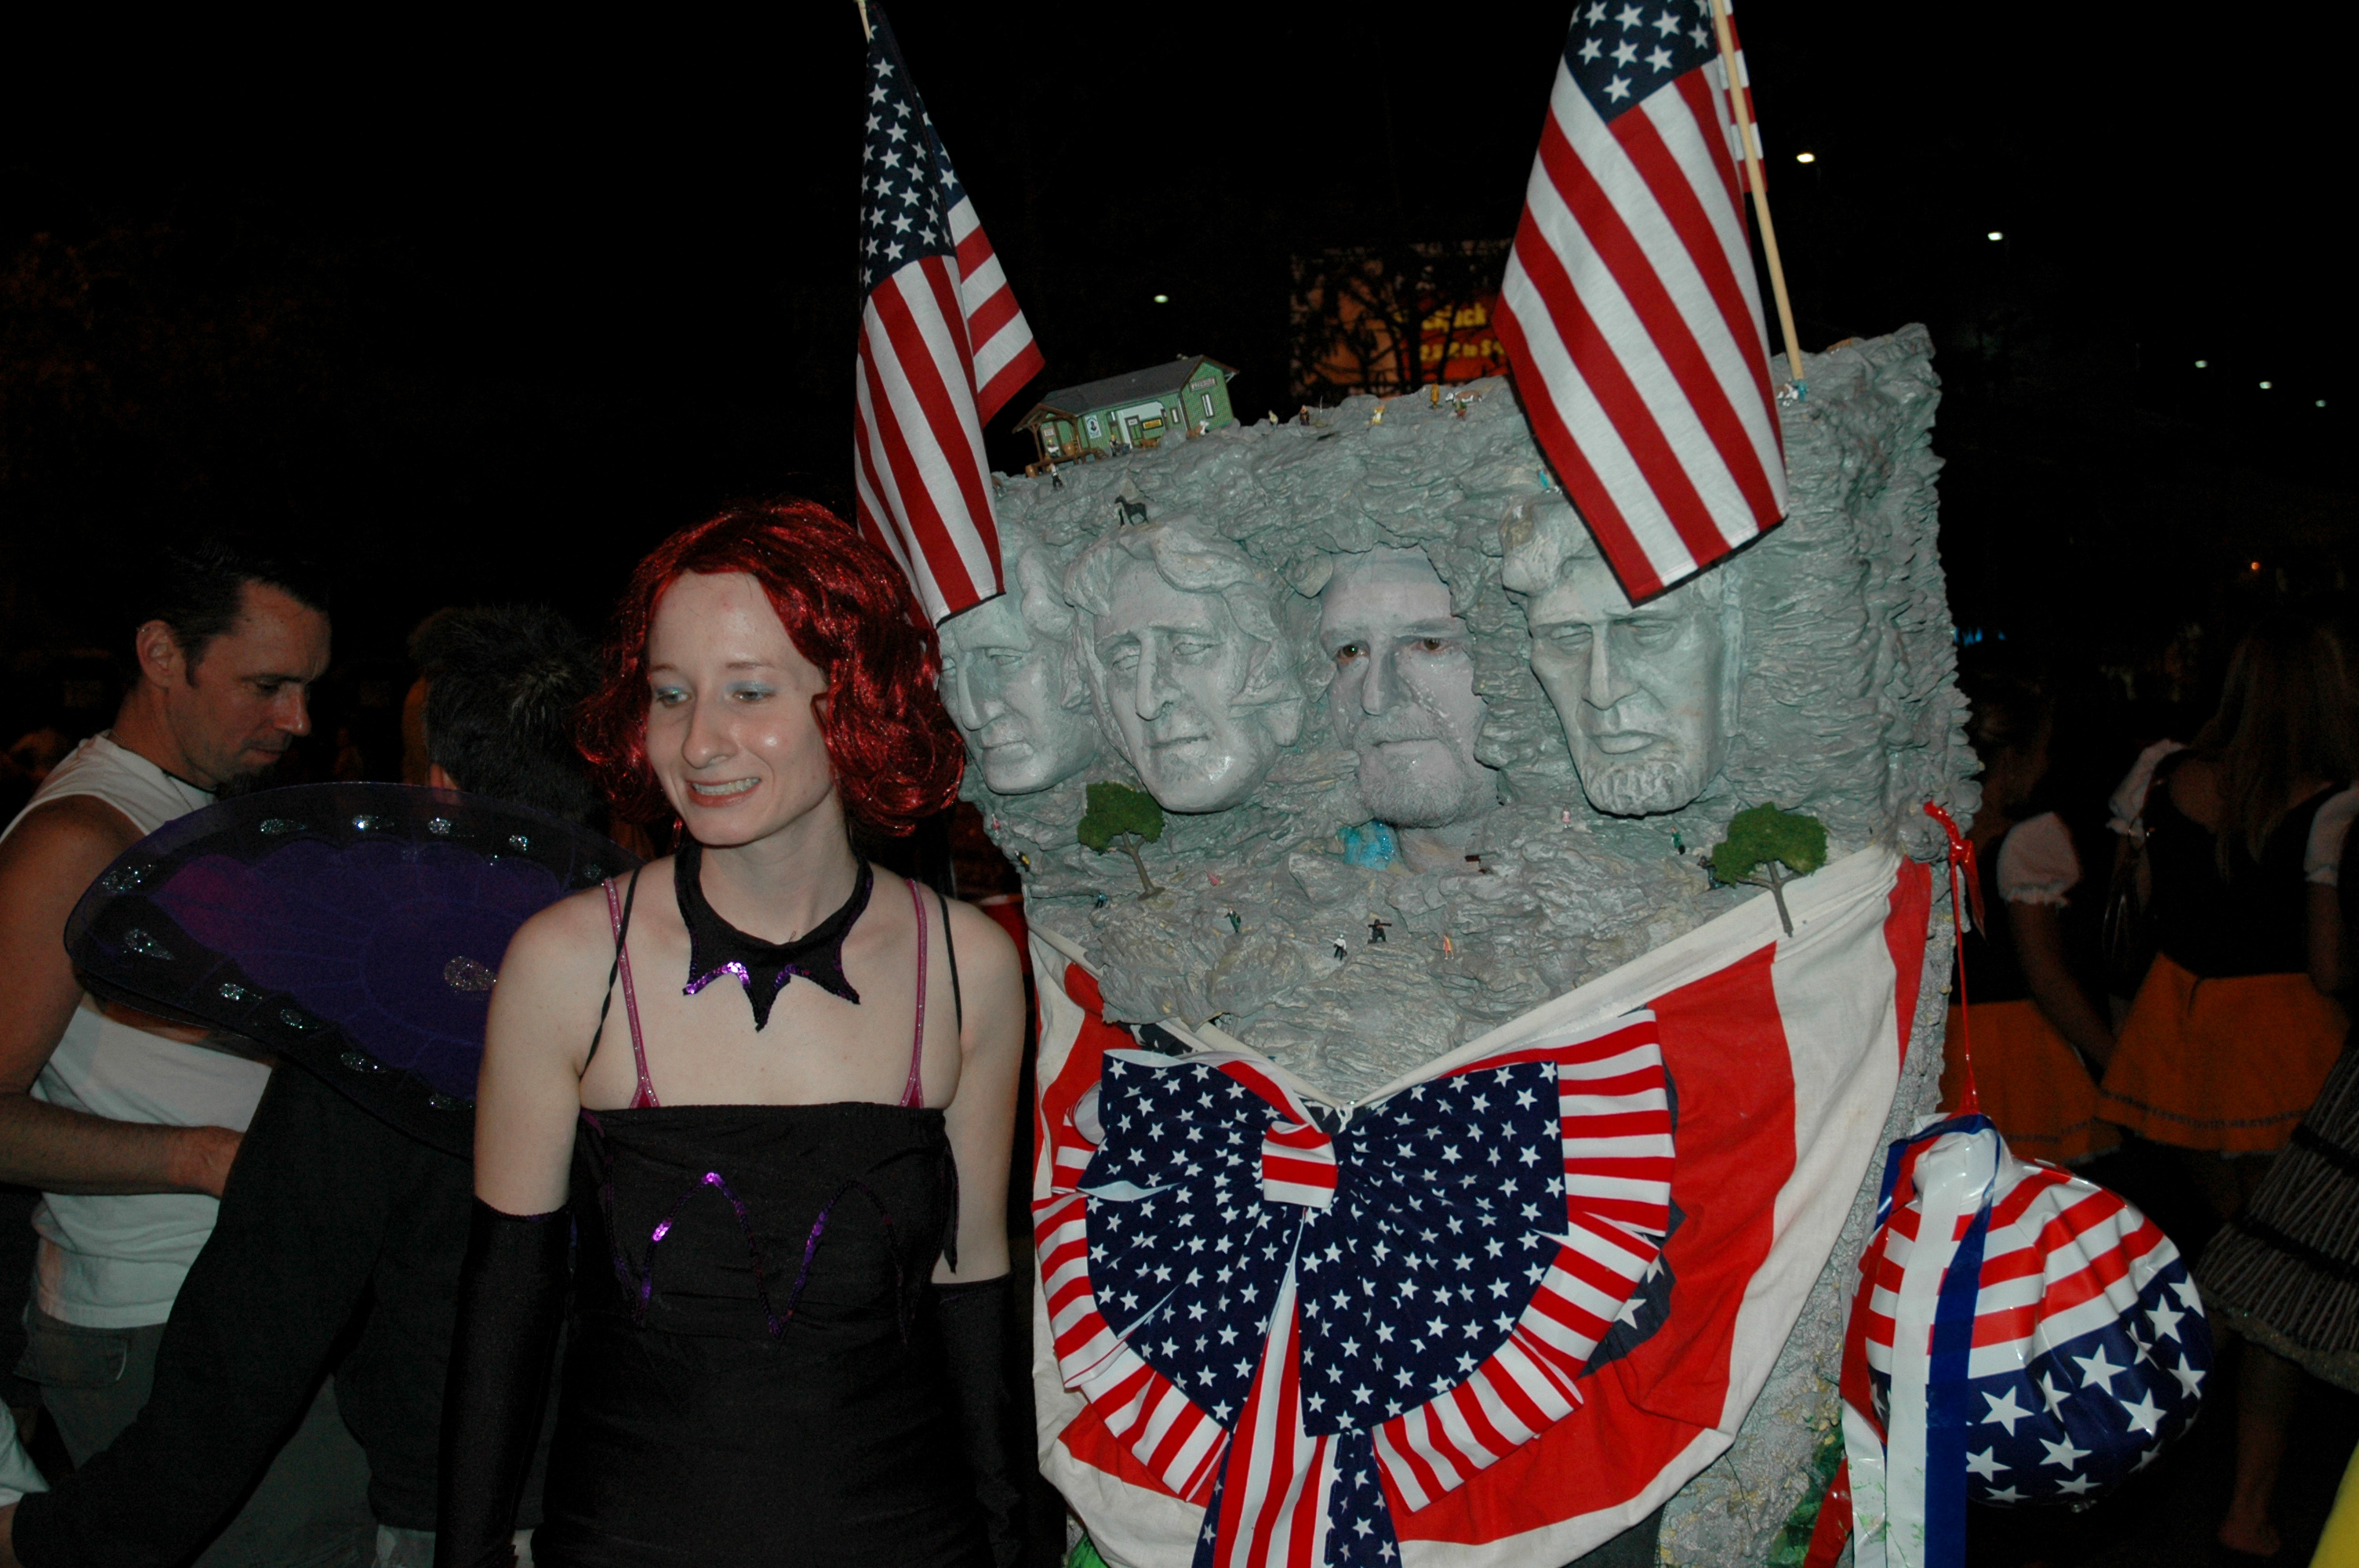 File:Milda Harris and Mt Rushmore - 2005 West Hollywood Halloween ...